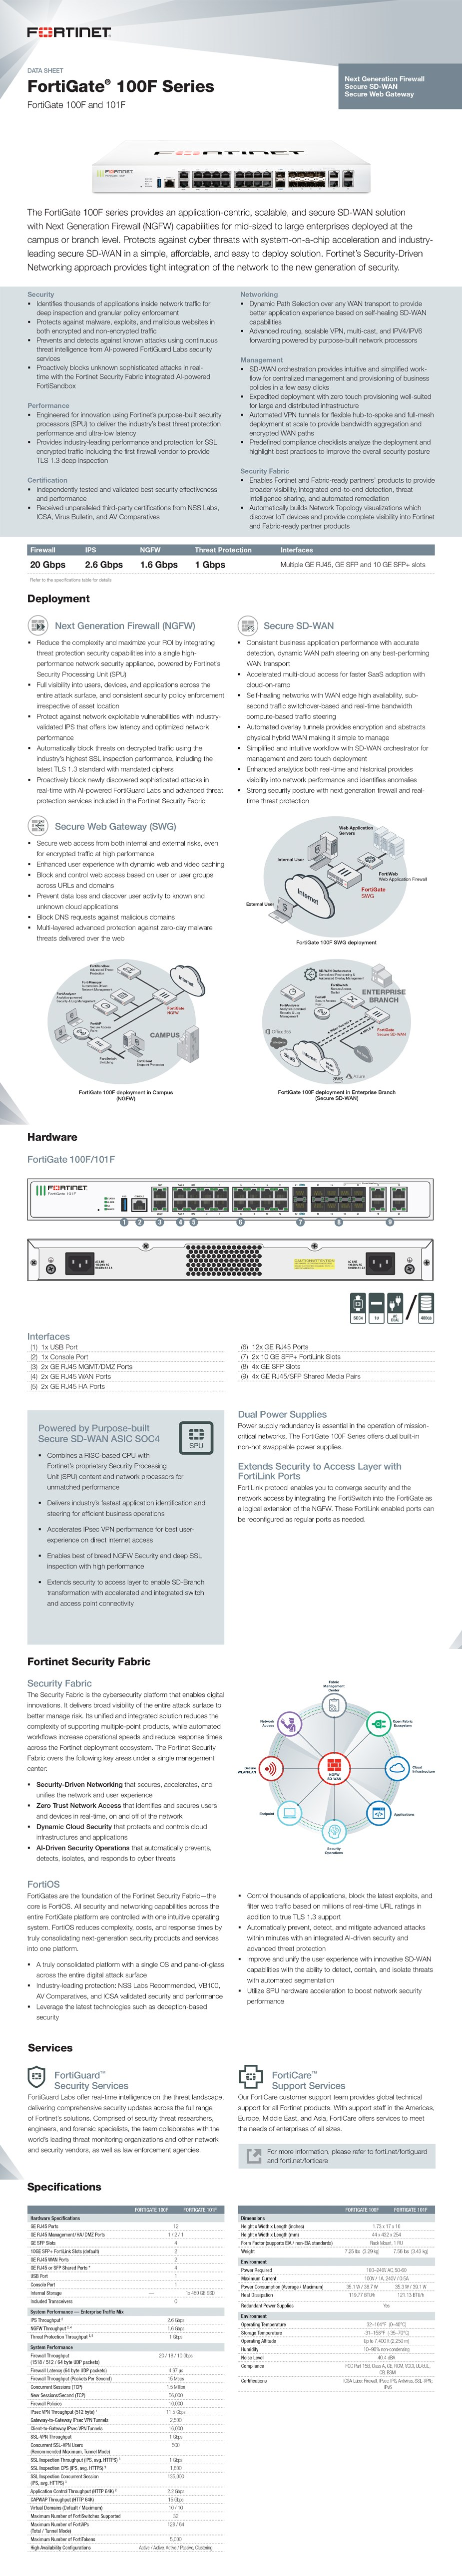 Fortinet Fortigate-100F Hardware Plus 1 Year 24x7 Forticare and Fortiguard UTP - Overview 1